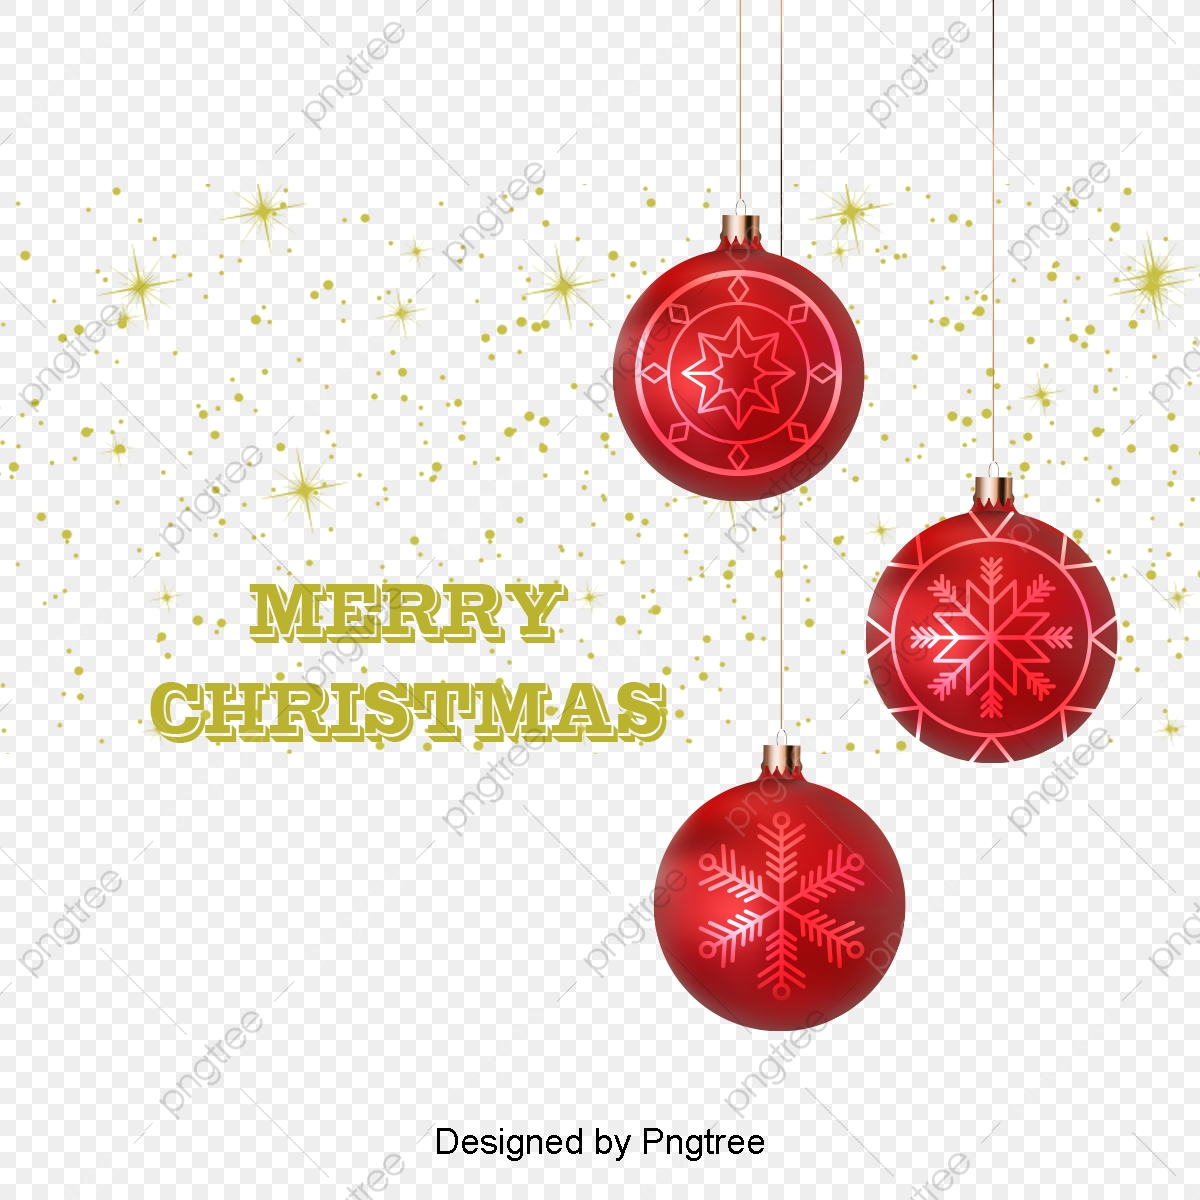 Red Christmas Ball Ornaments Golden Red Christmas Ball Vector Png Transparent Clipart Image And Psd File For Free Download